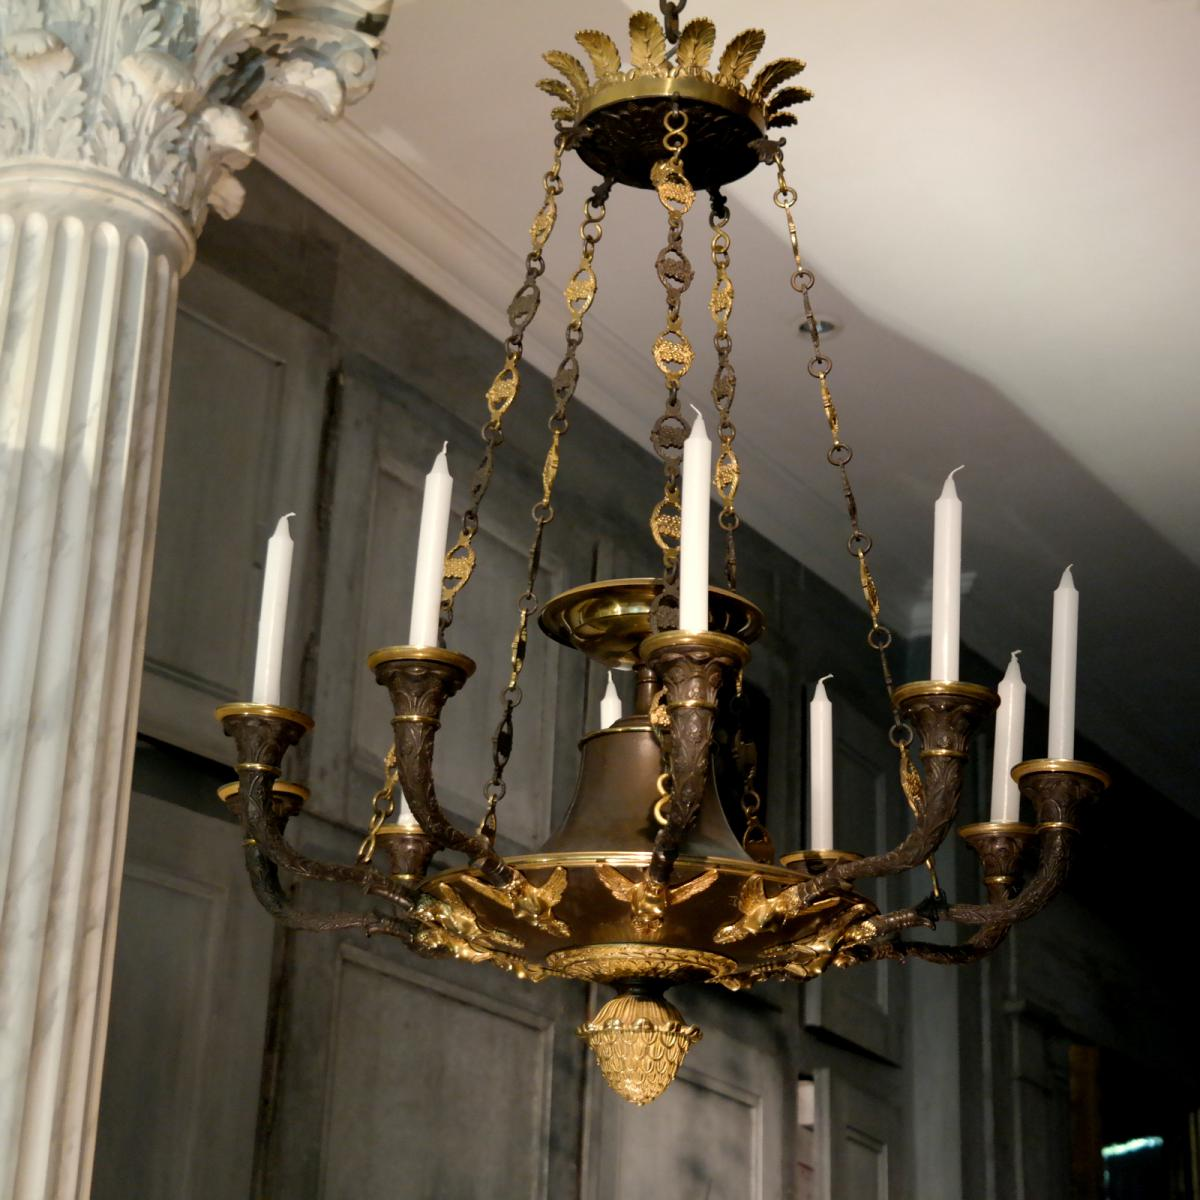 Very fine, Empire period chandelier